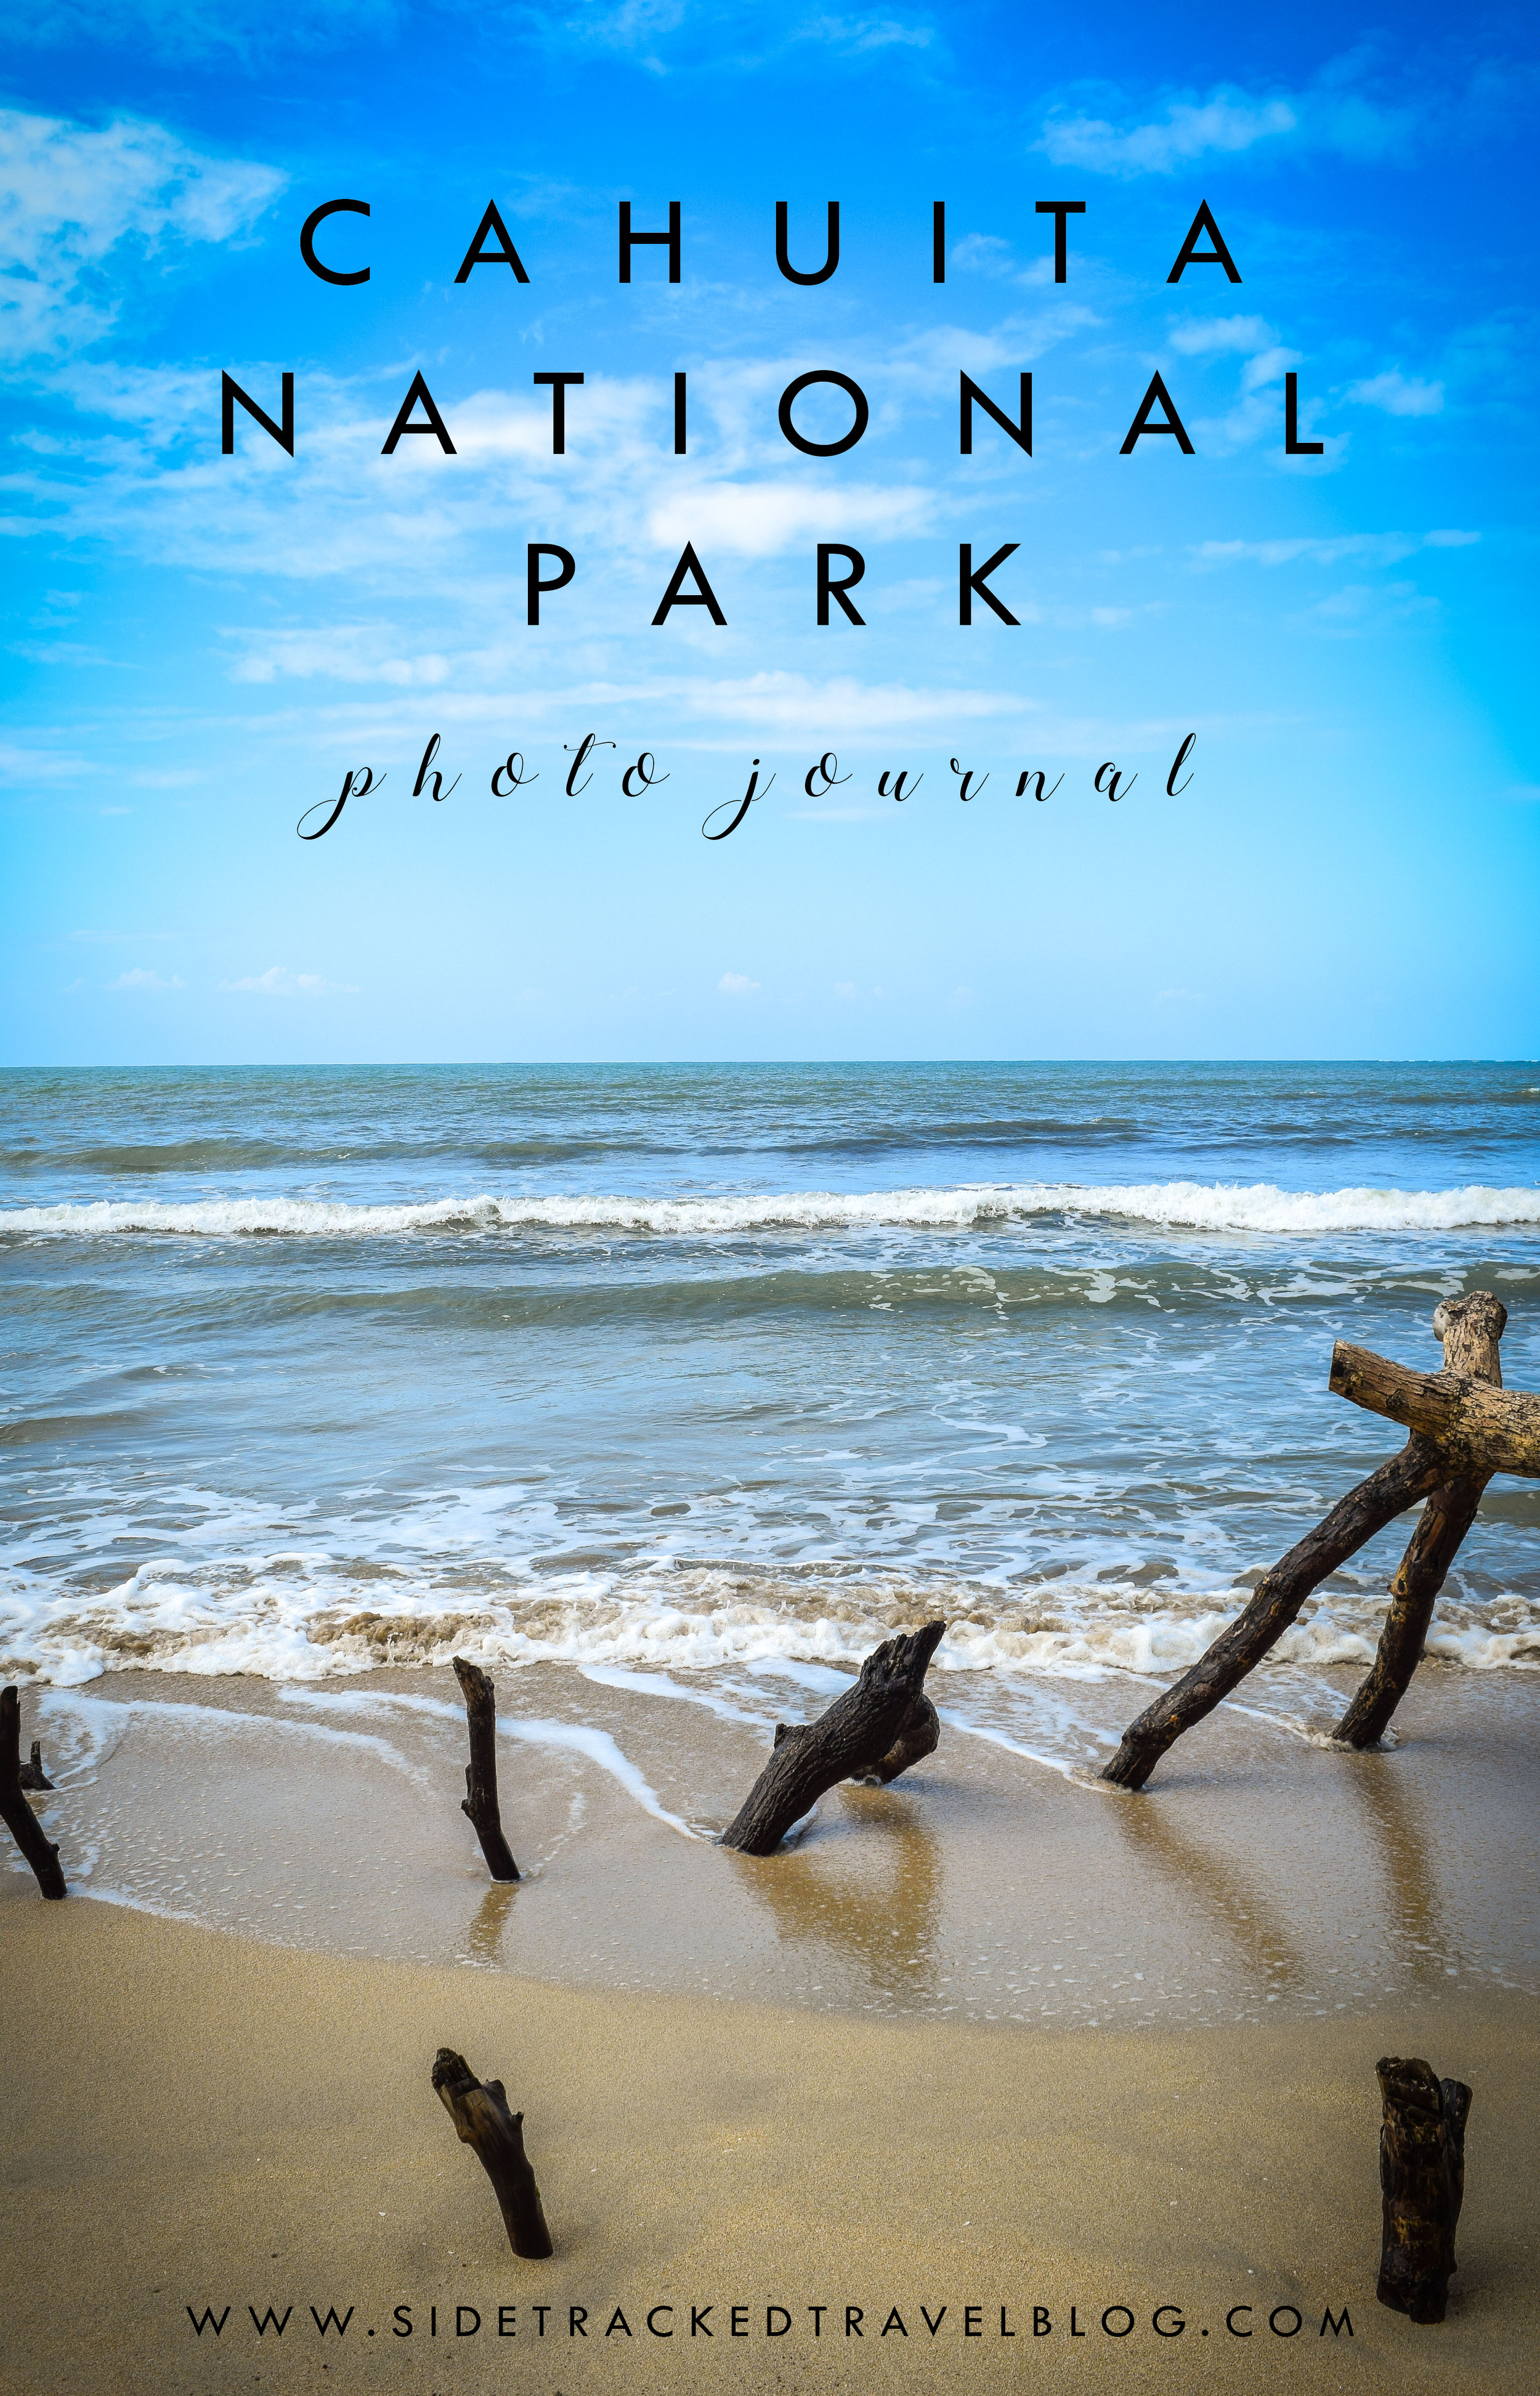 Cahuita National Park, on Costa Rica's Caribbean coast, is home to beautiful beaches, hundreds of bird and mammal species, and a precious underwater ecosystem.With all the wonders of nature in one place, this is an unmissable spot in Costa Rica.